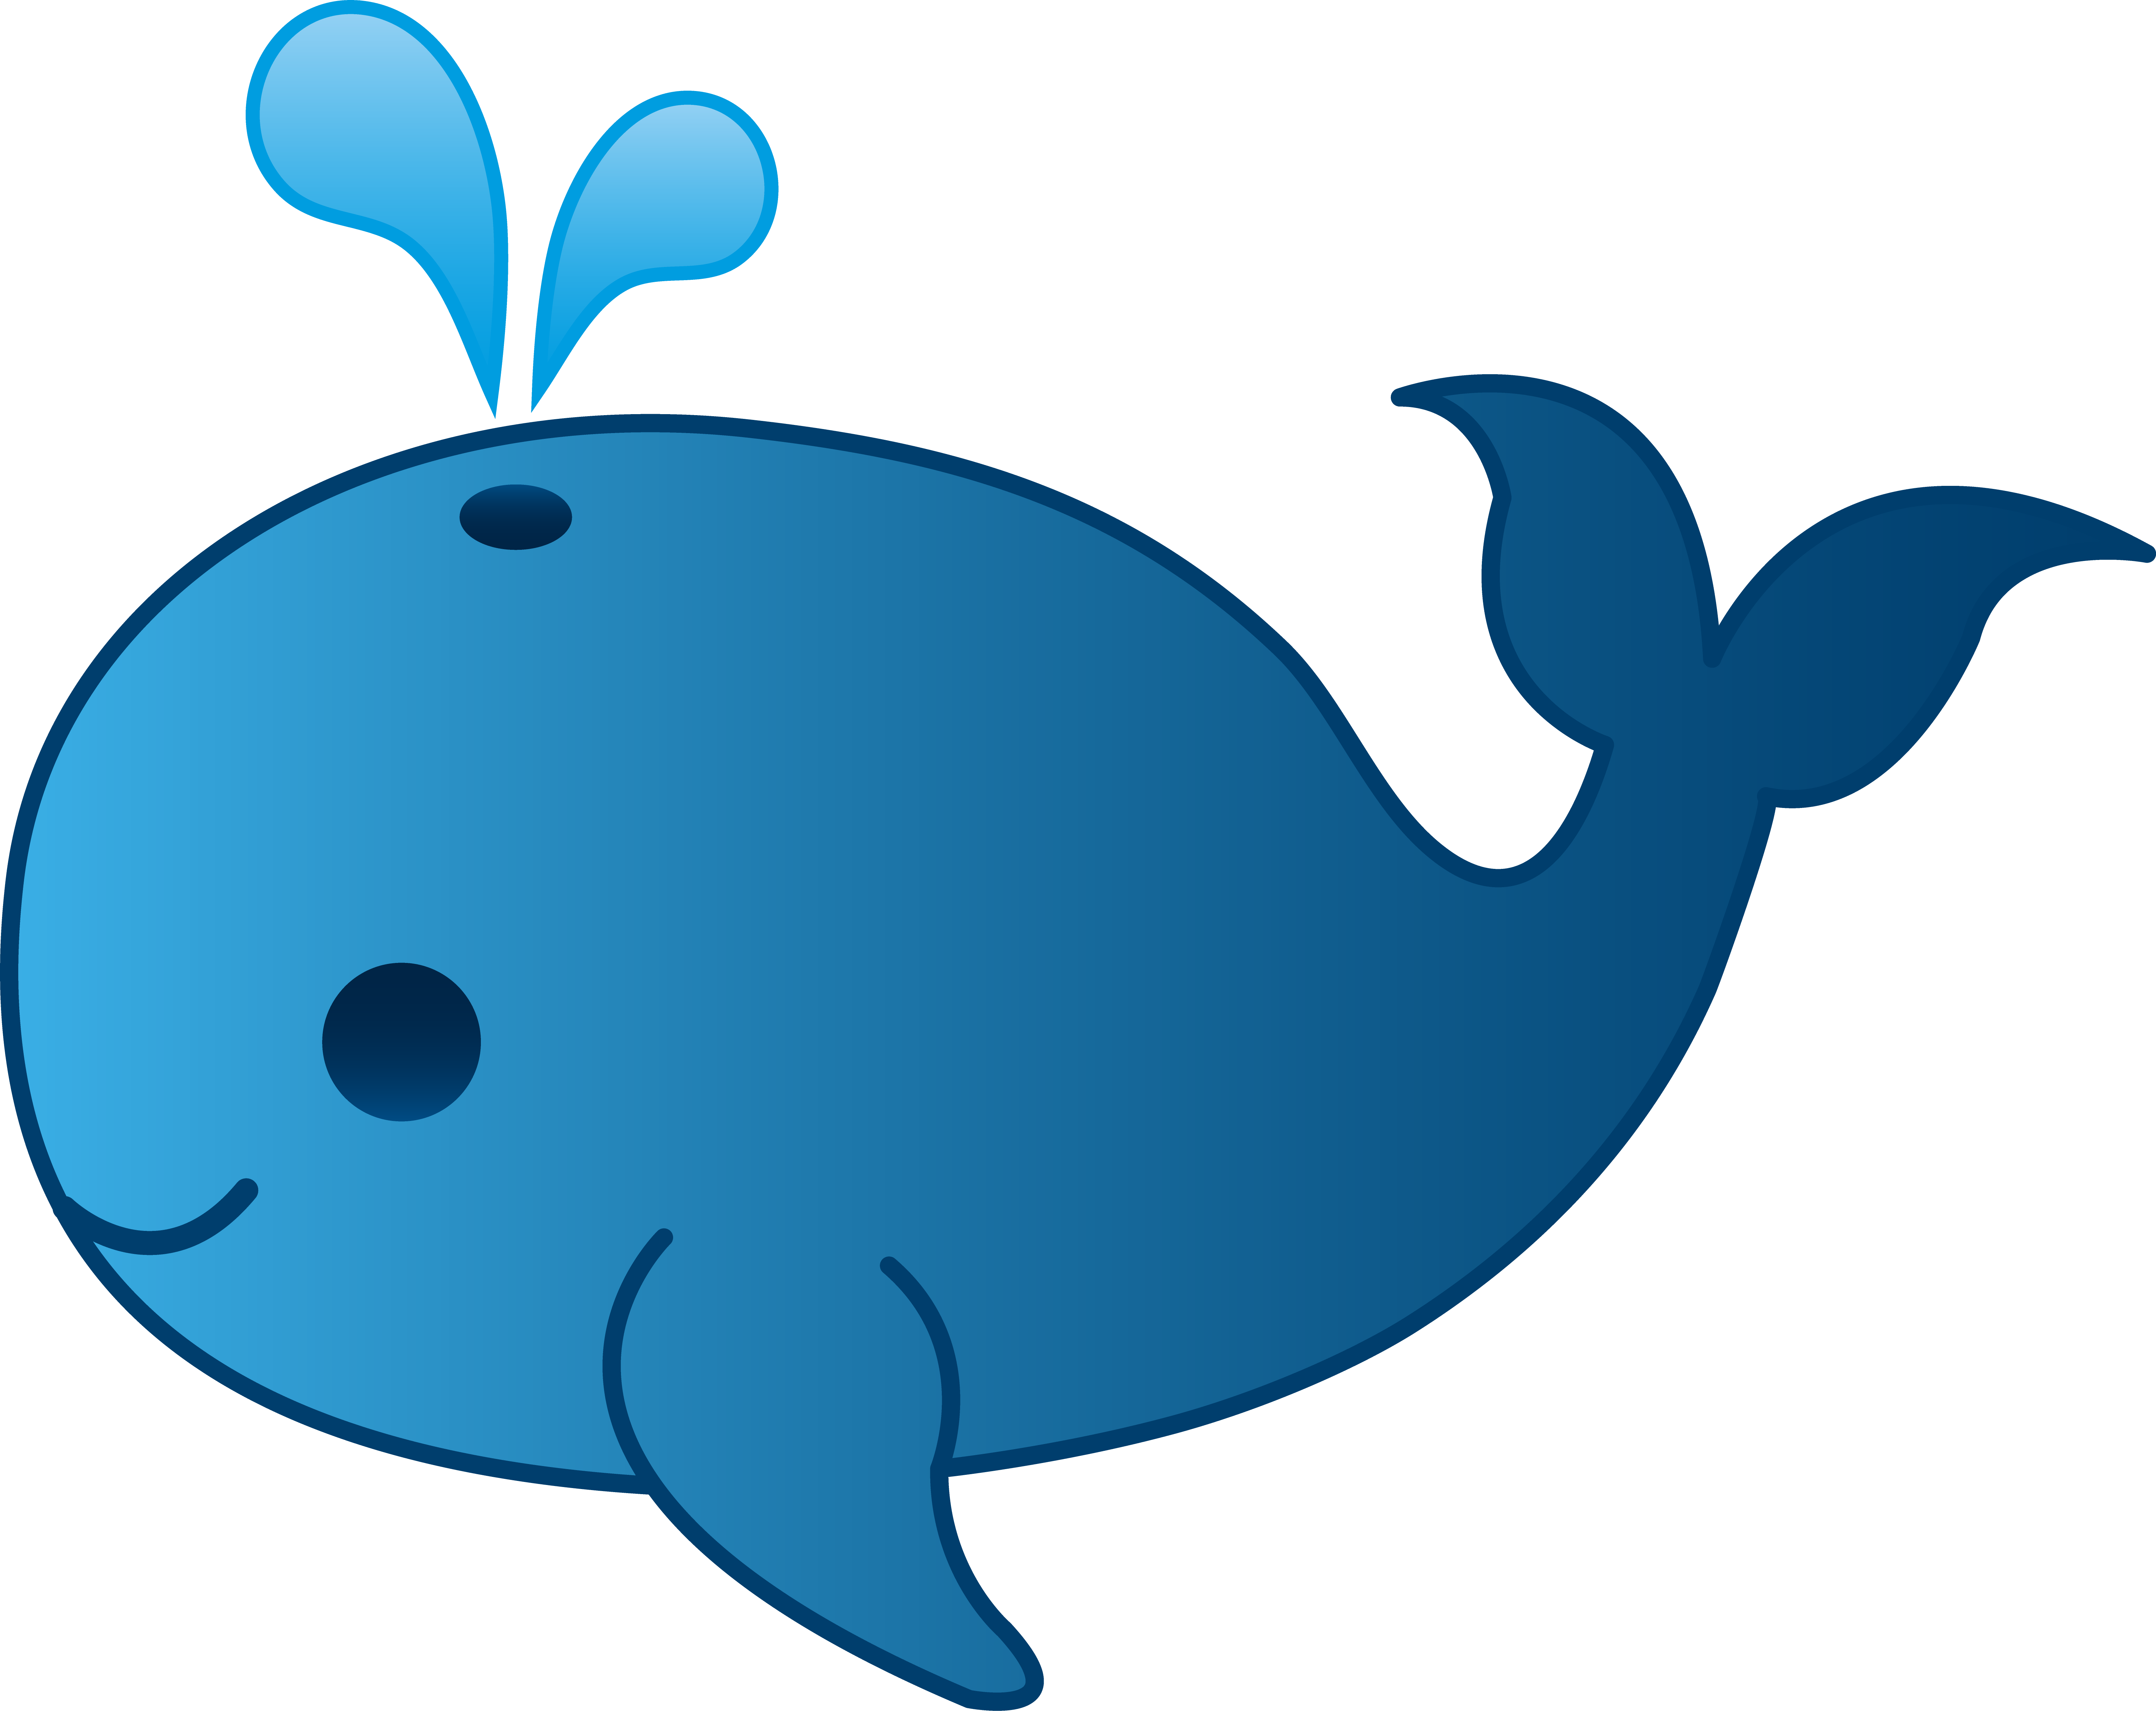 Simple whale clipart 3 » Clipart Station.